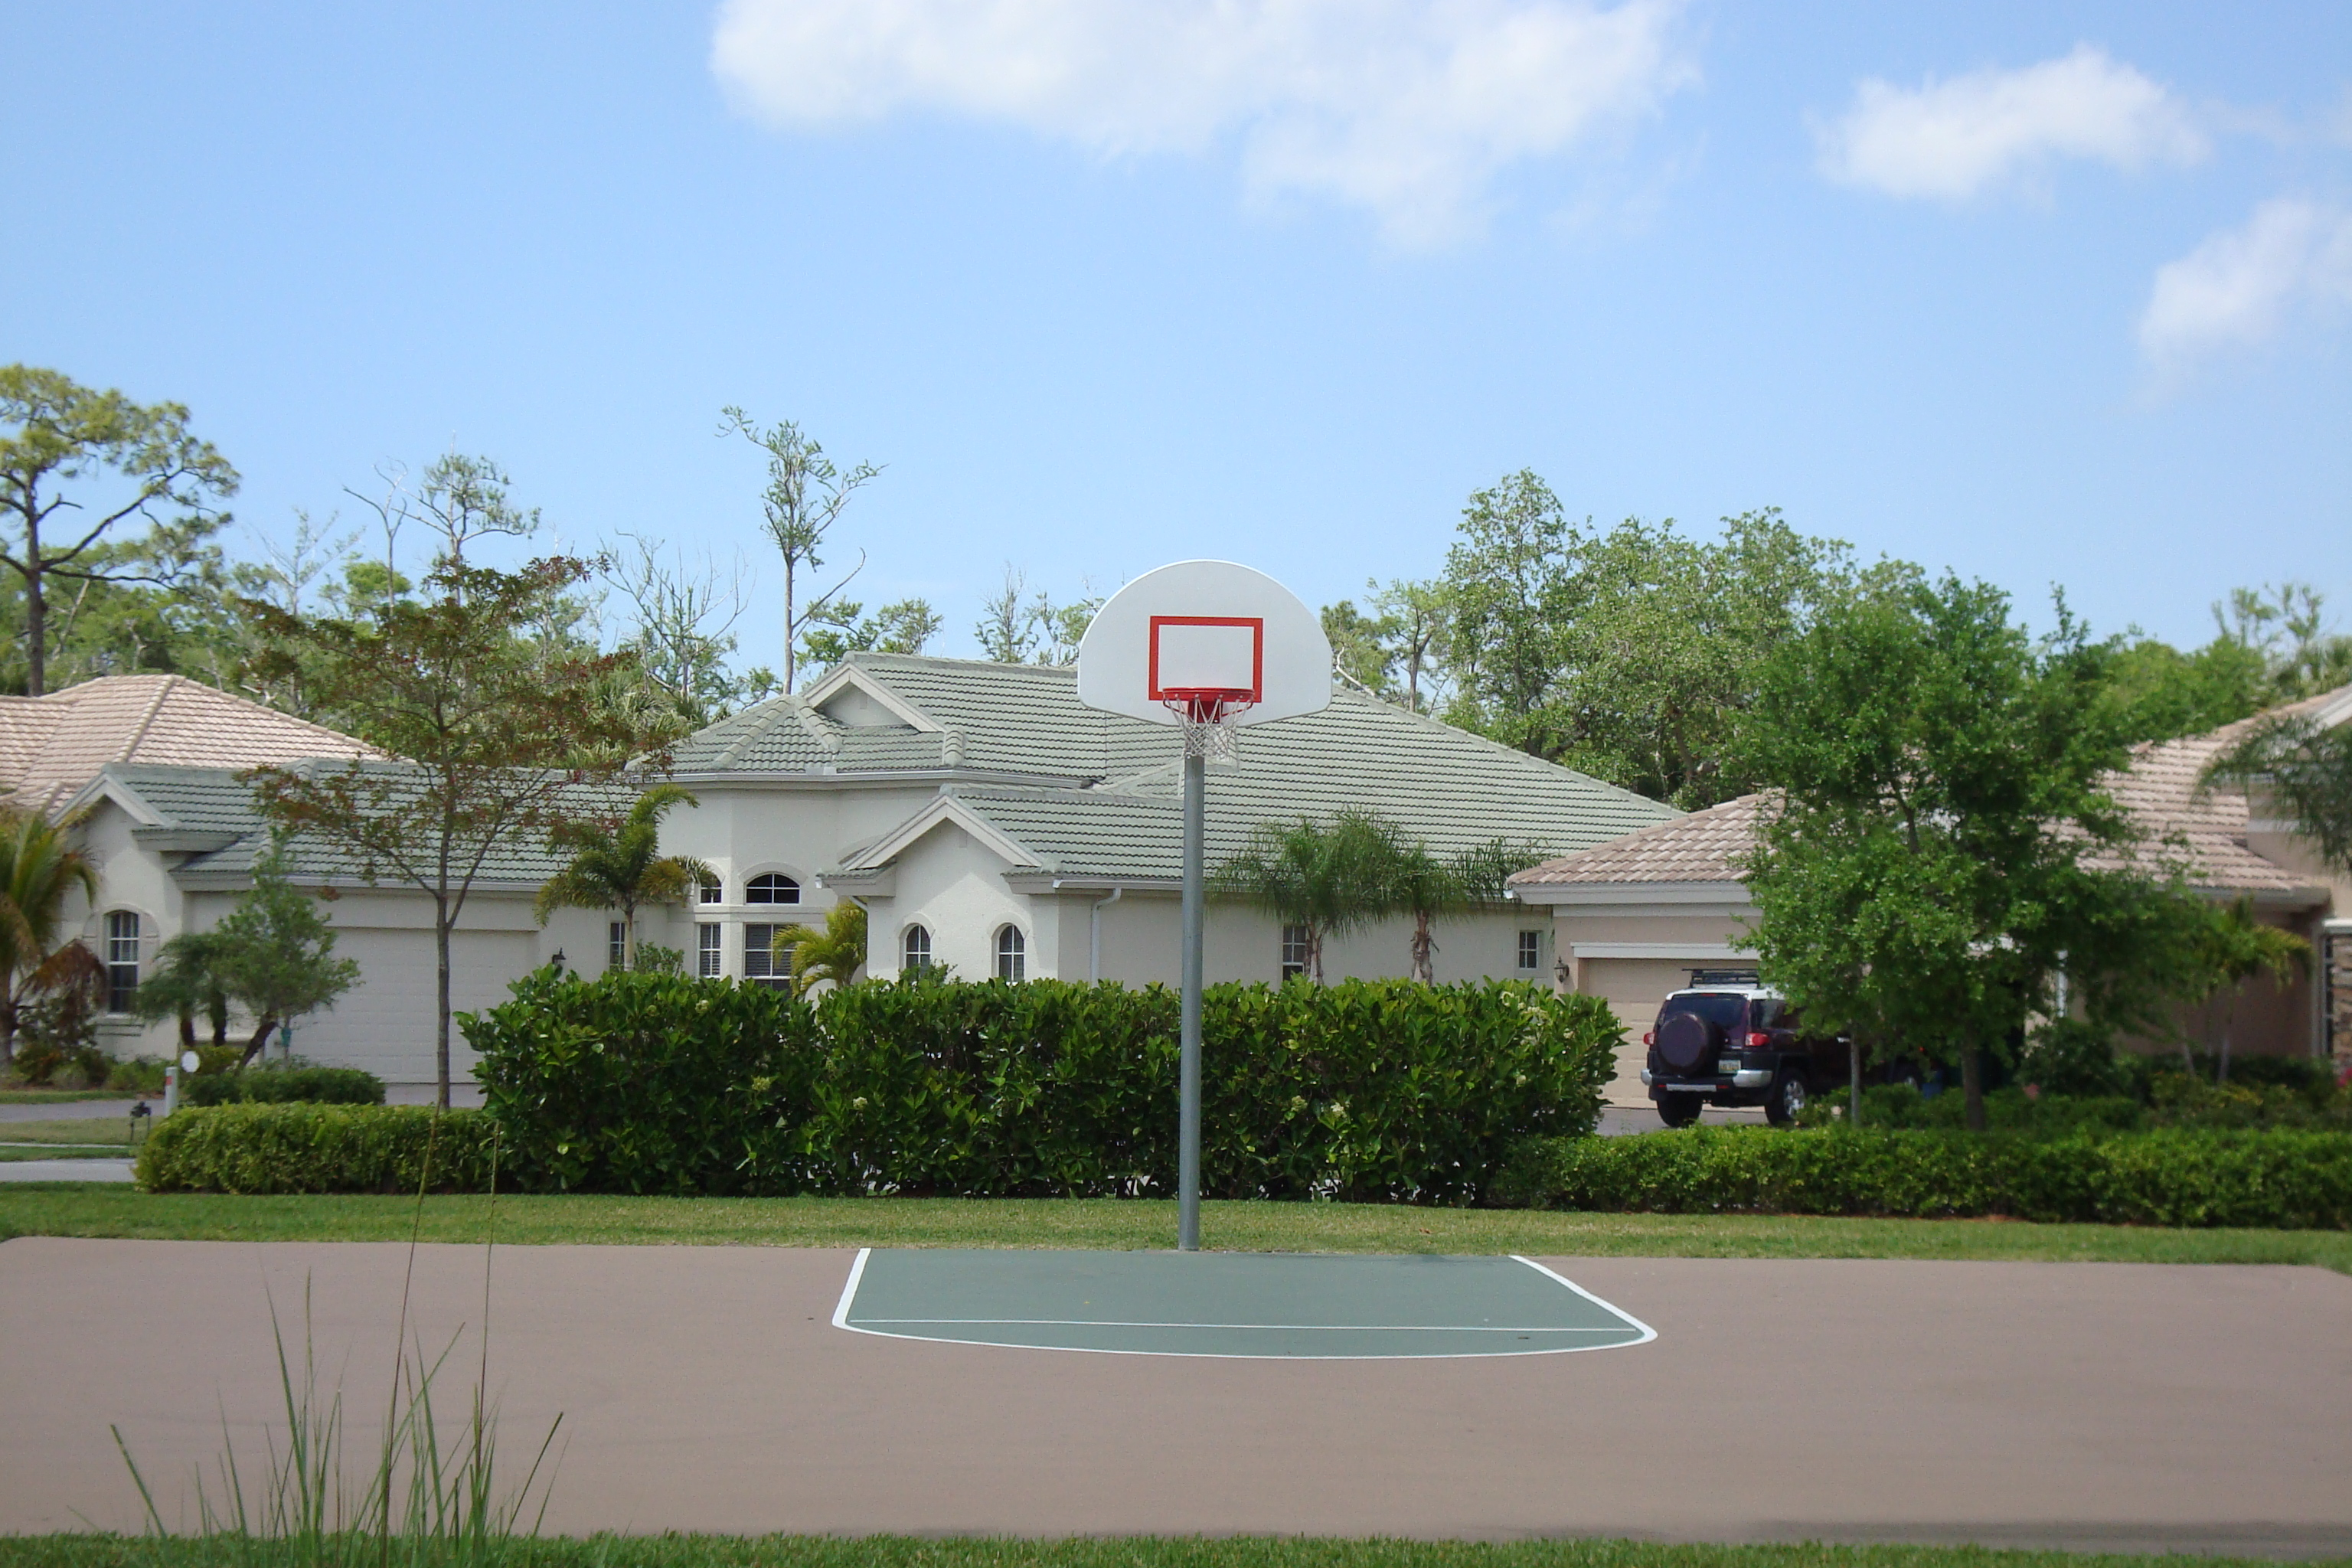 Basketball Court at Delasol in Naples, Florida.